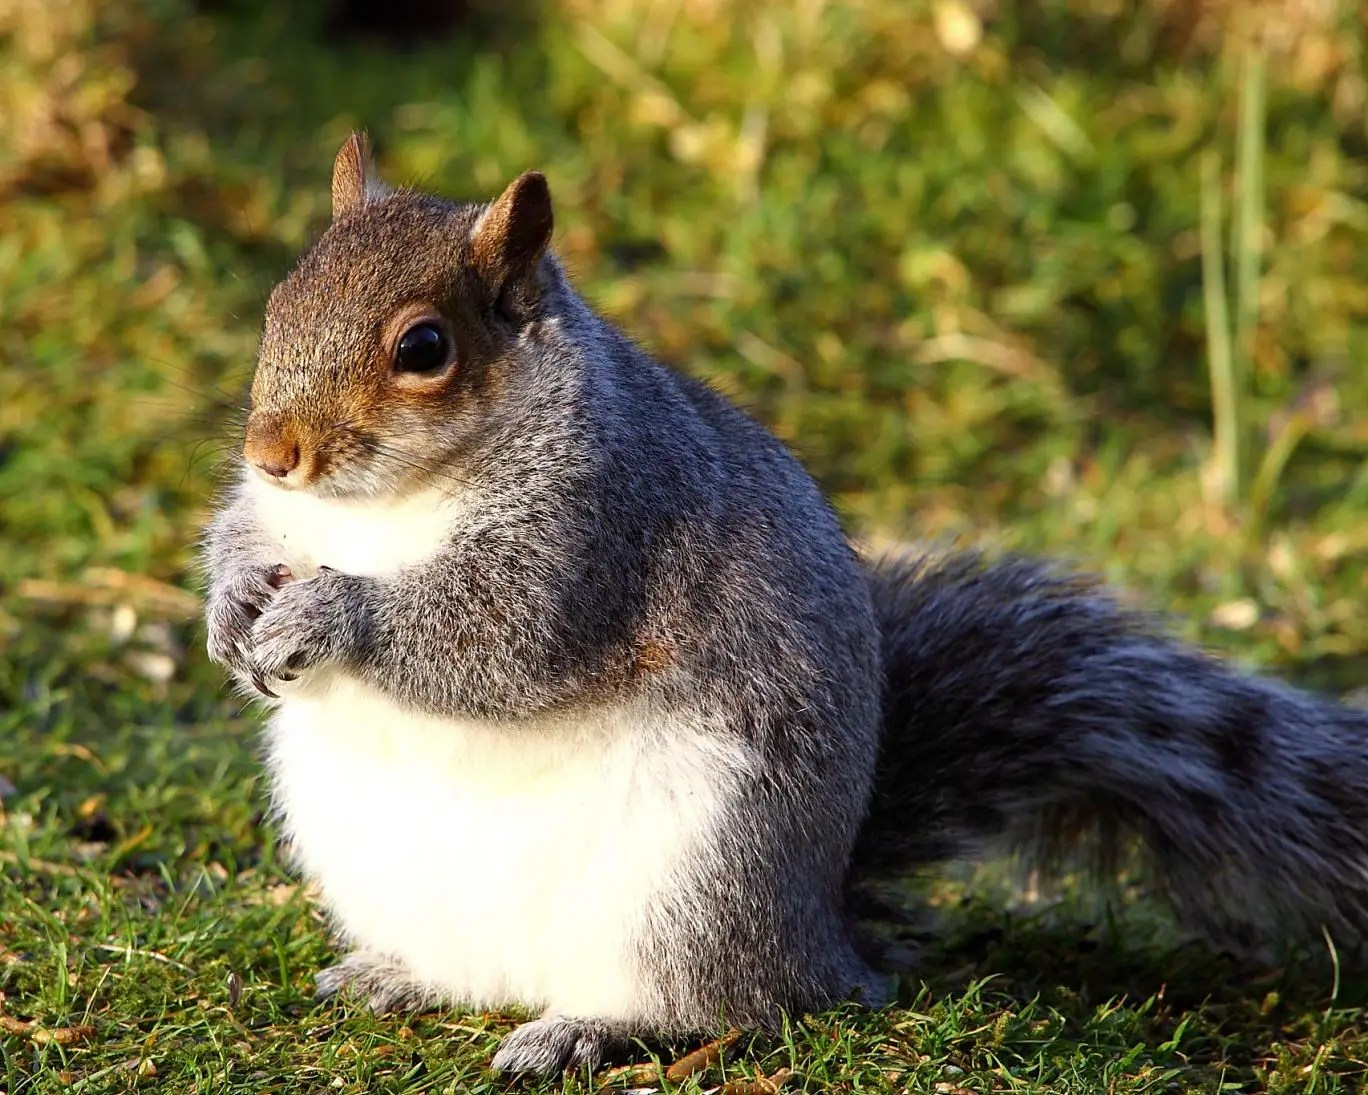 A fat squirrel